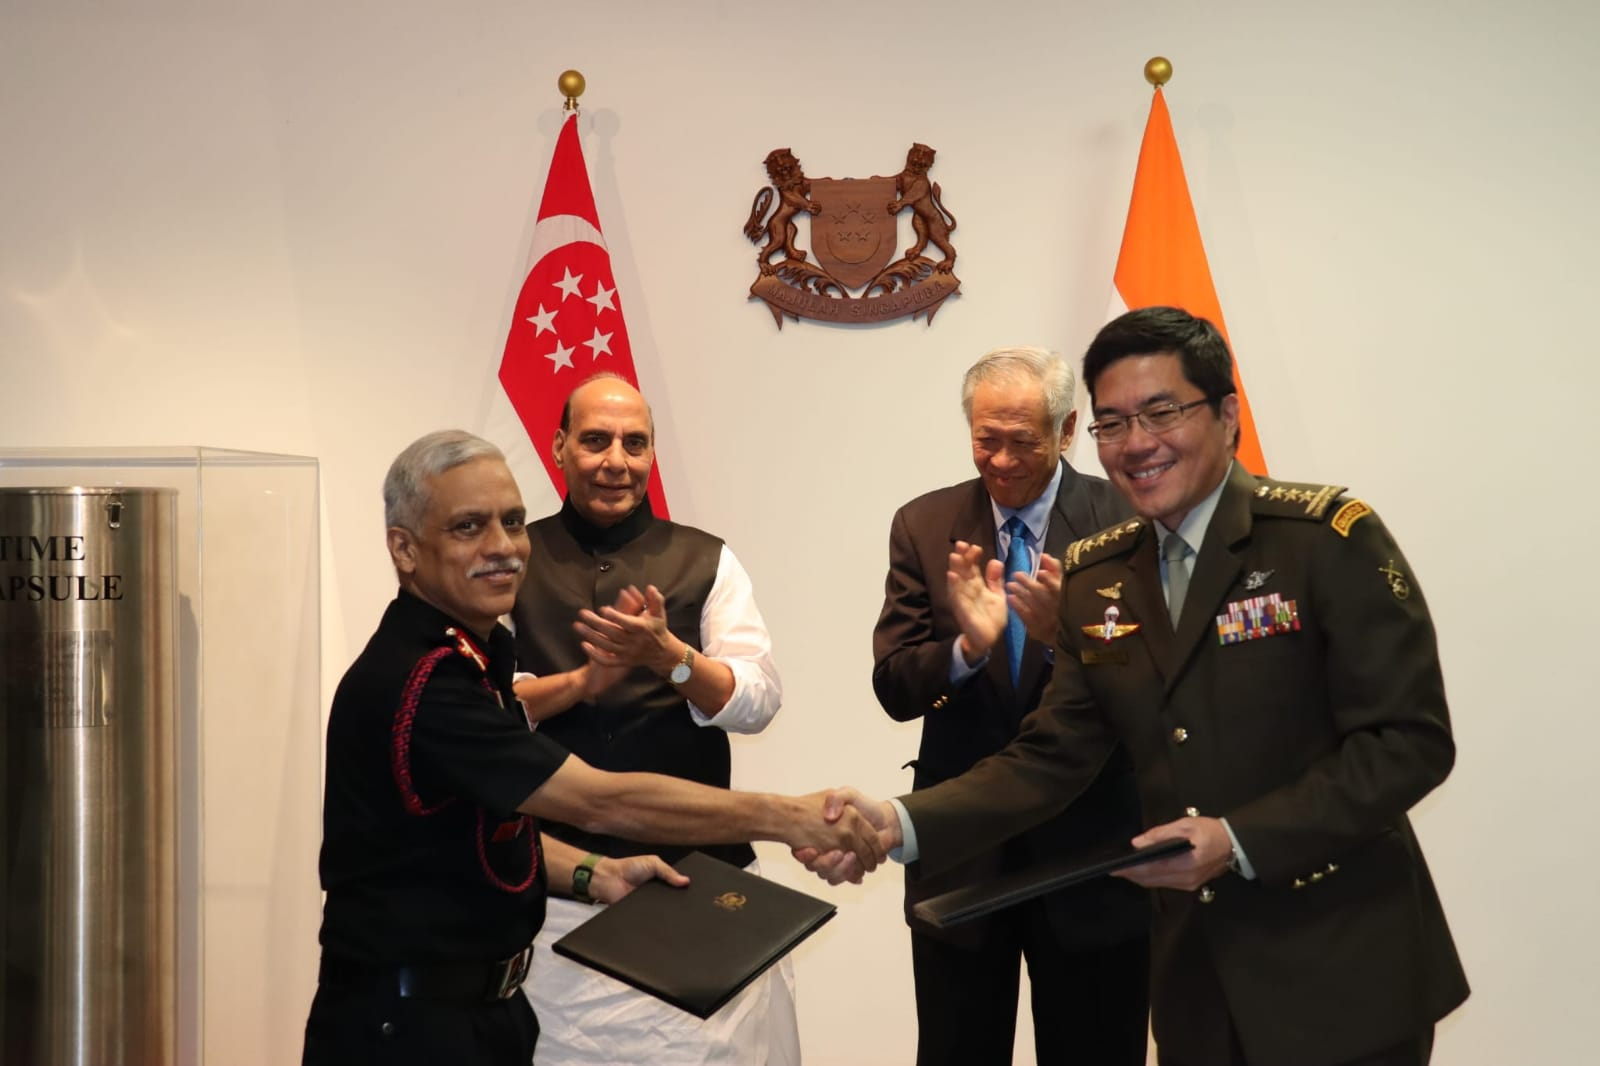 Defence Ministers of India (left) and Singapore applaud in the background at the conclusion of the 4th